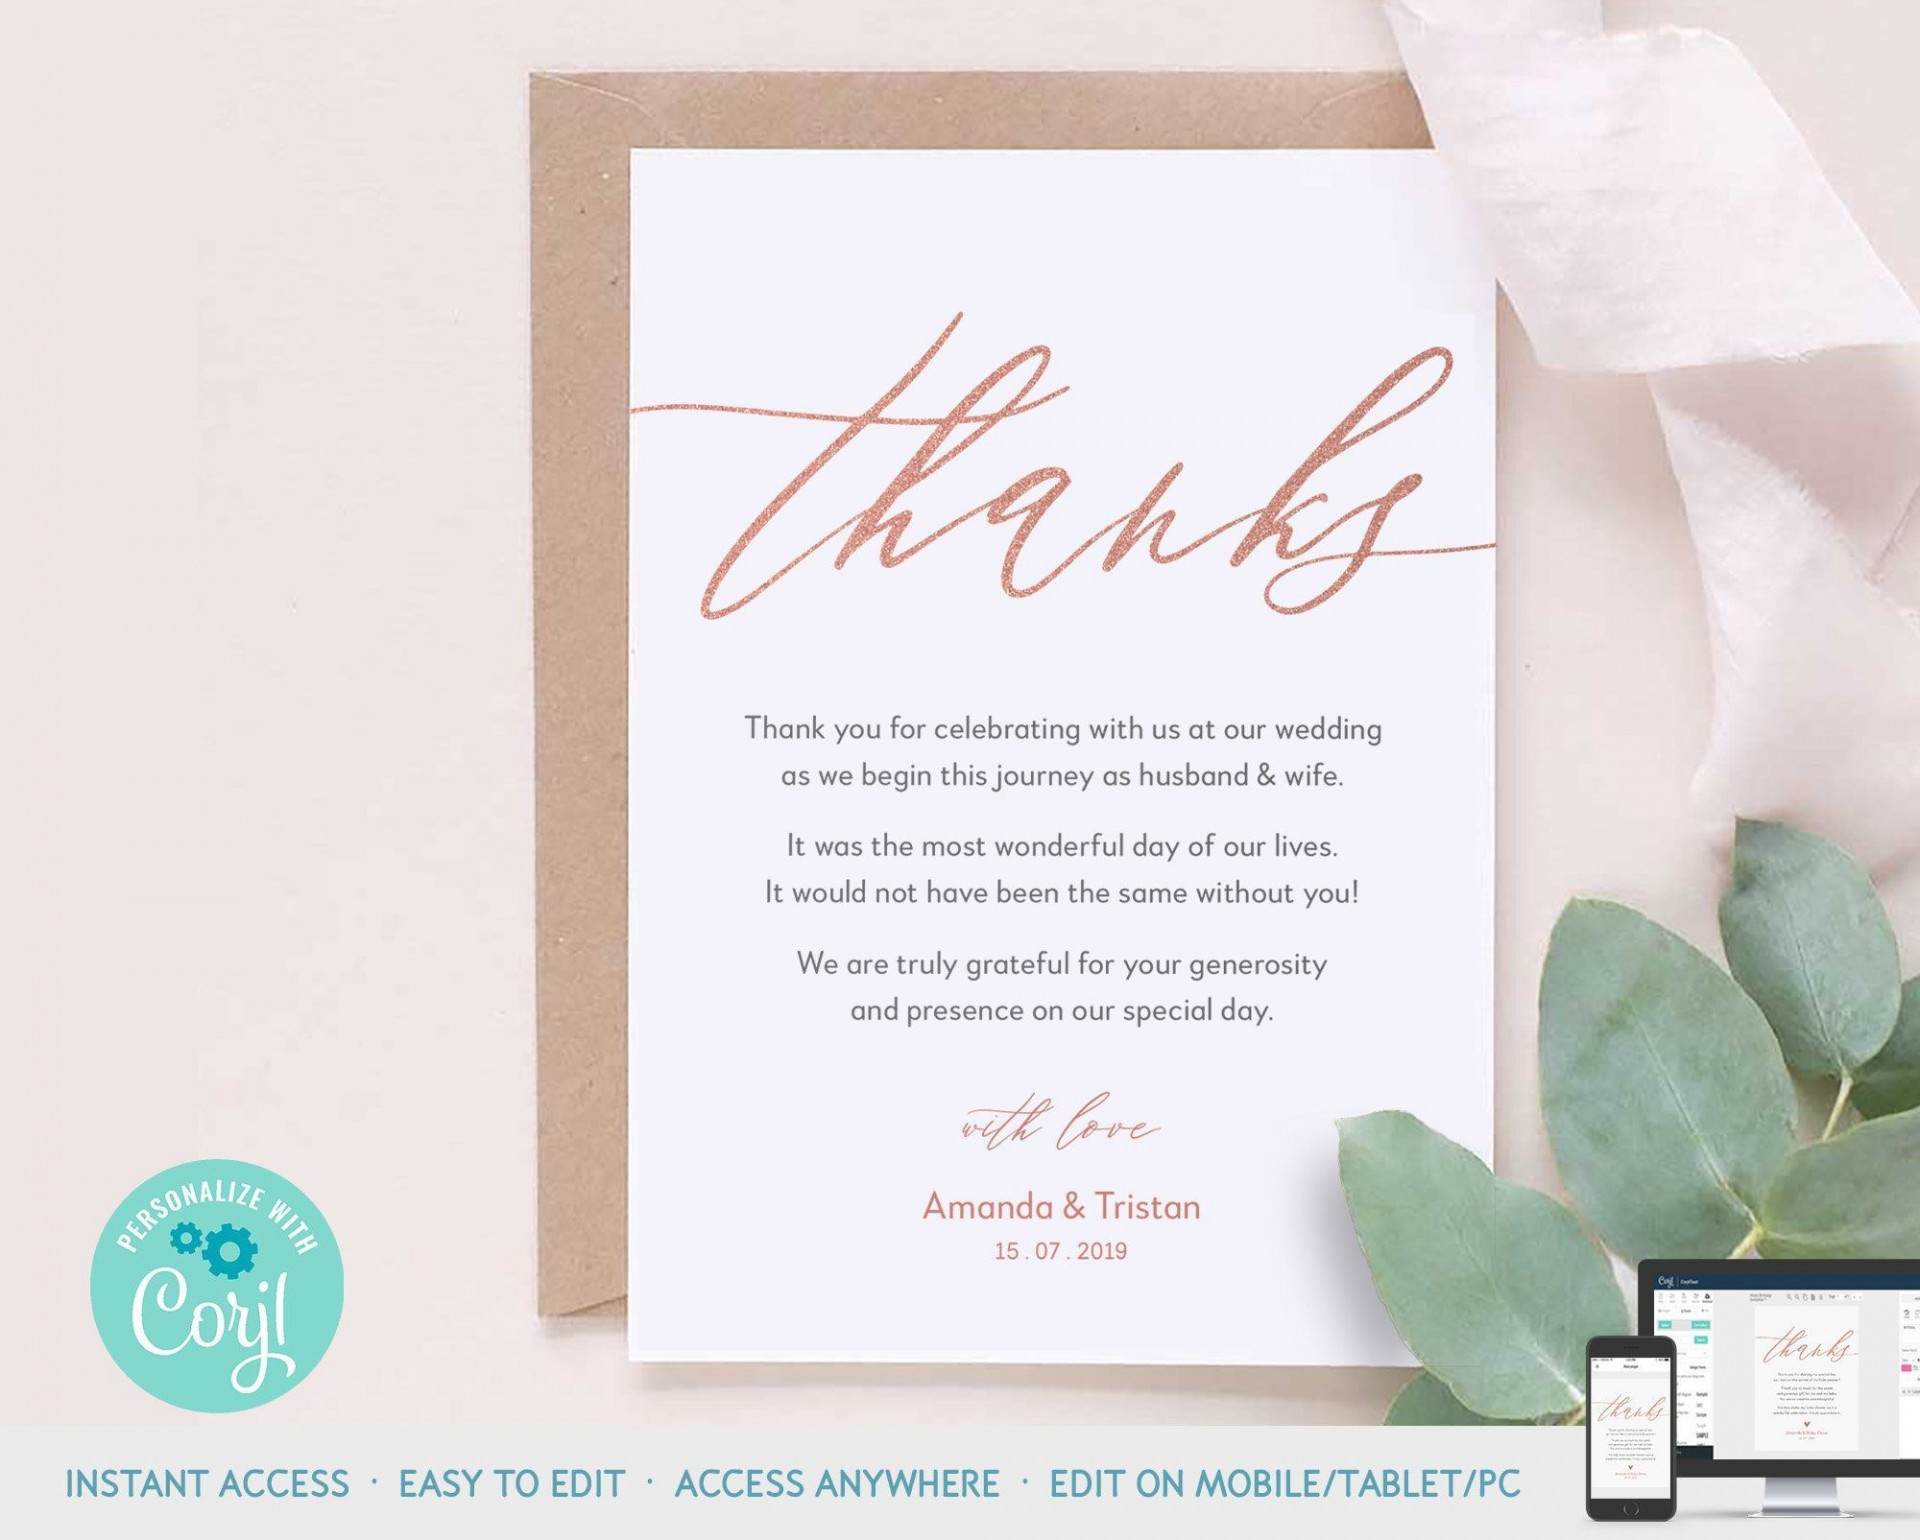 003 Top Wedding Thank You Note Template Design  Money Sample Wording Bridal Shower Gift1920